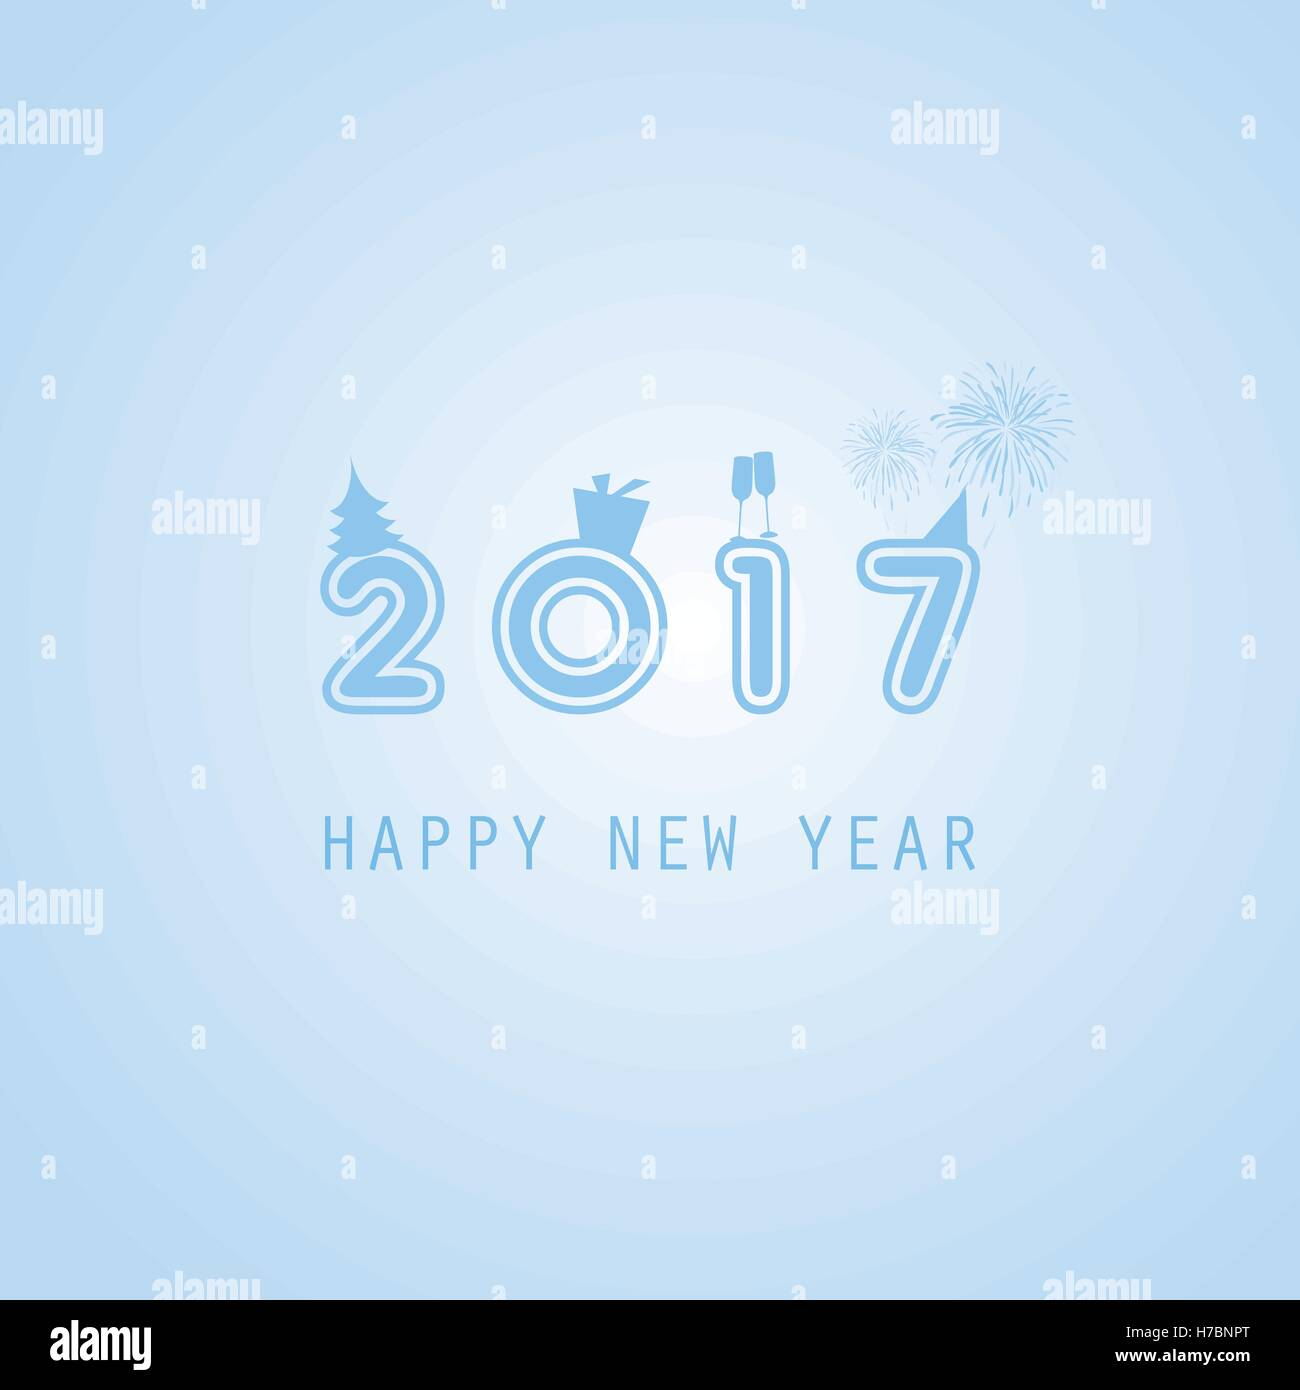 best wishes colorful abstract modern style happy new year greeting card cover or background creative design template 2017